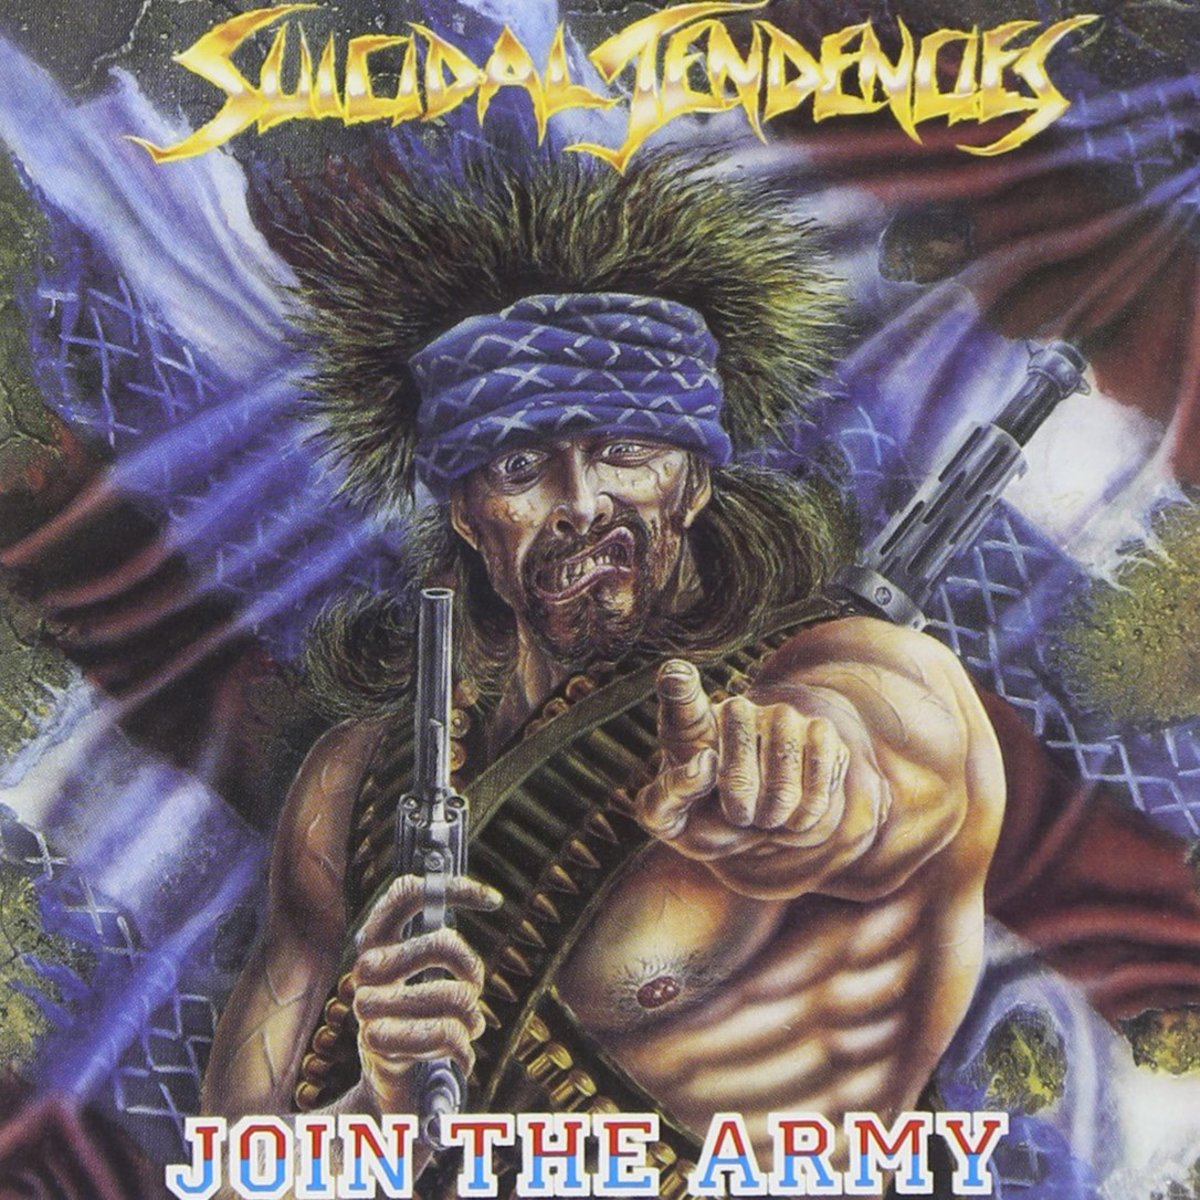 a-review-of-the-1987-album-join-the-army-good-crossover-thrash-metal